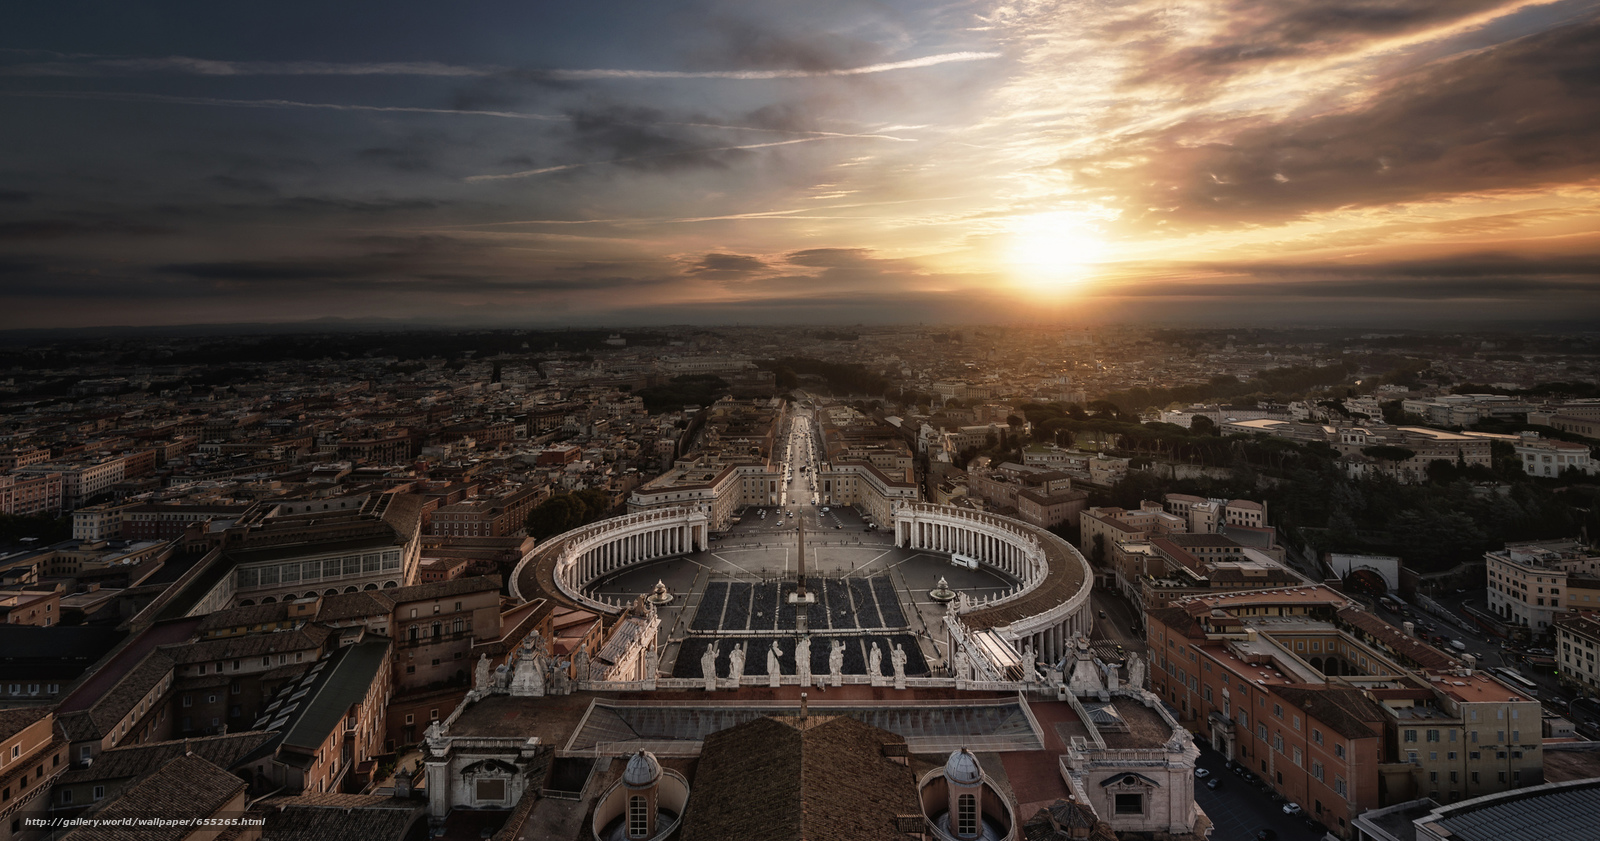 Download wallpaper Rome,  view from the top of the dome of St. Peter's,  Vatican,  city free desktop wallpaper in the resolution 2048x1077 — picture №655265